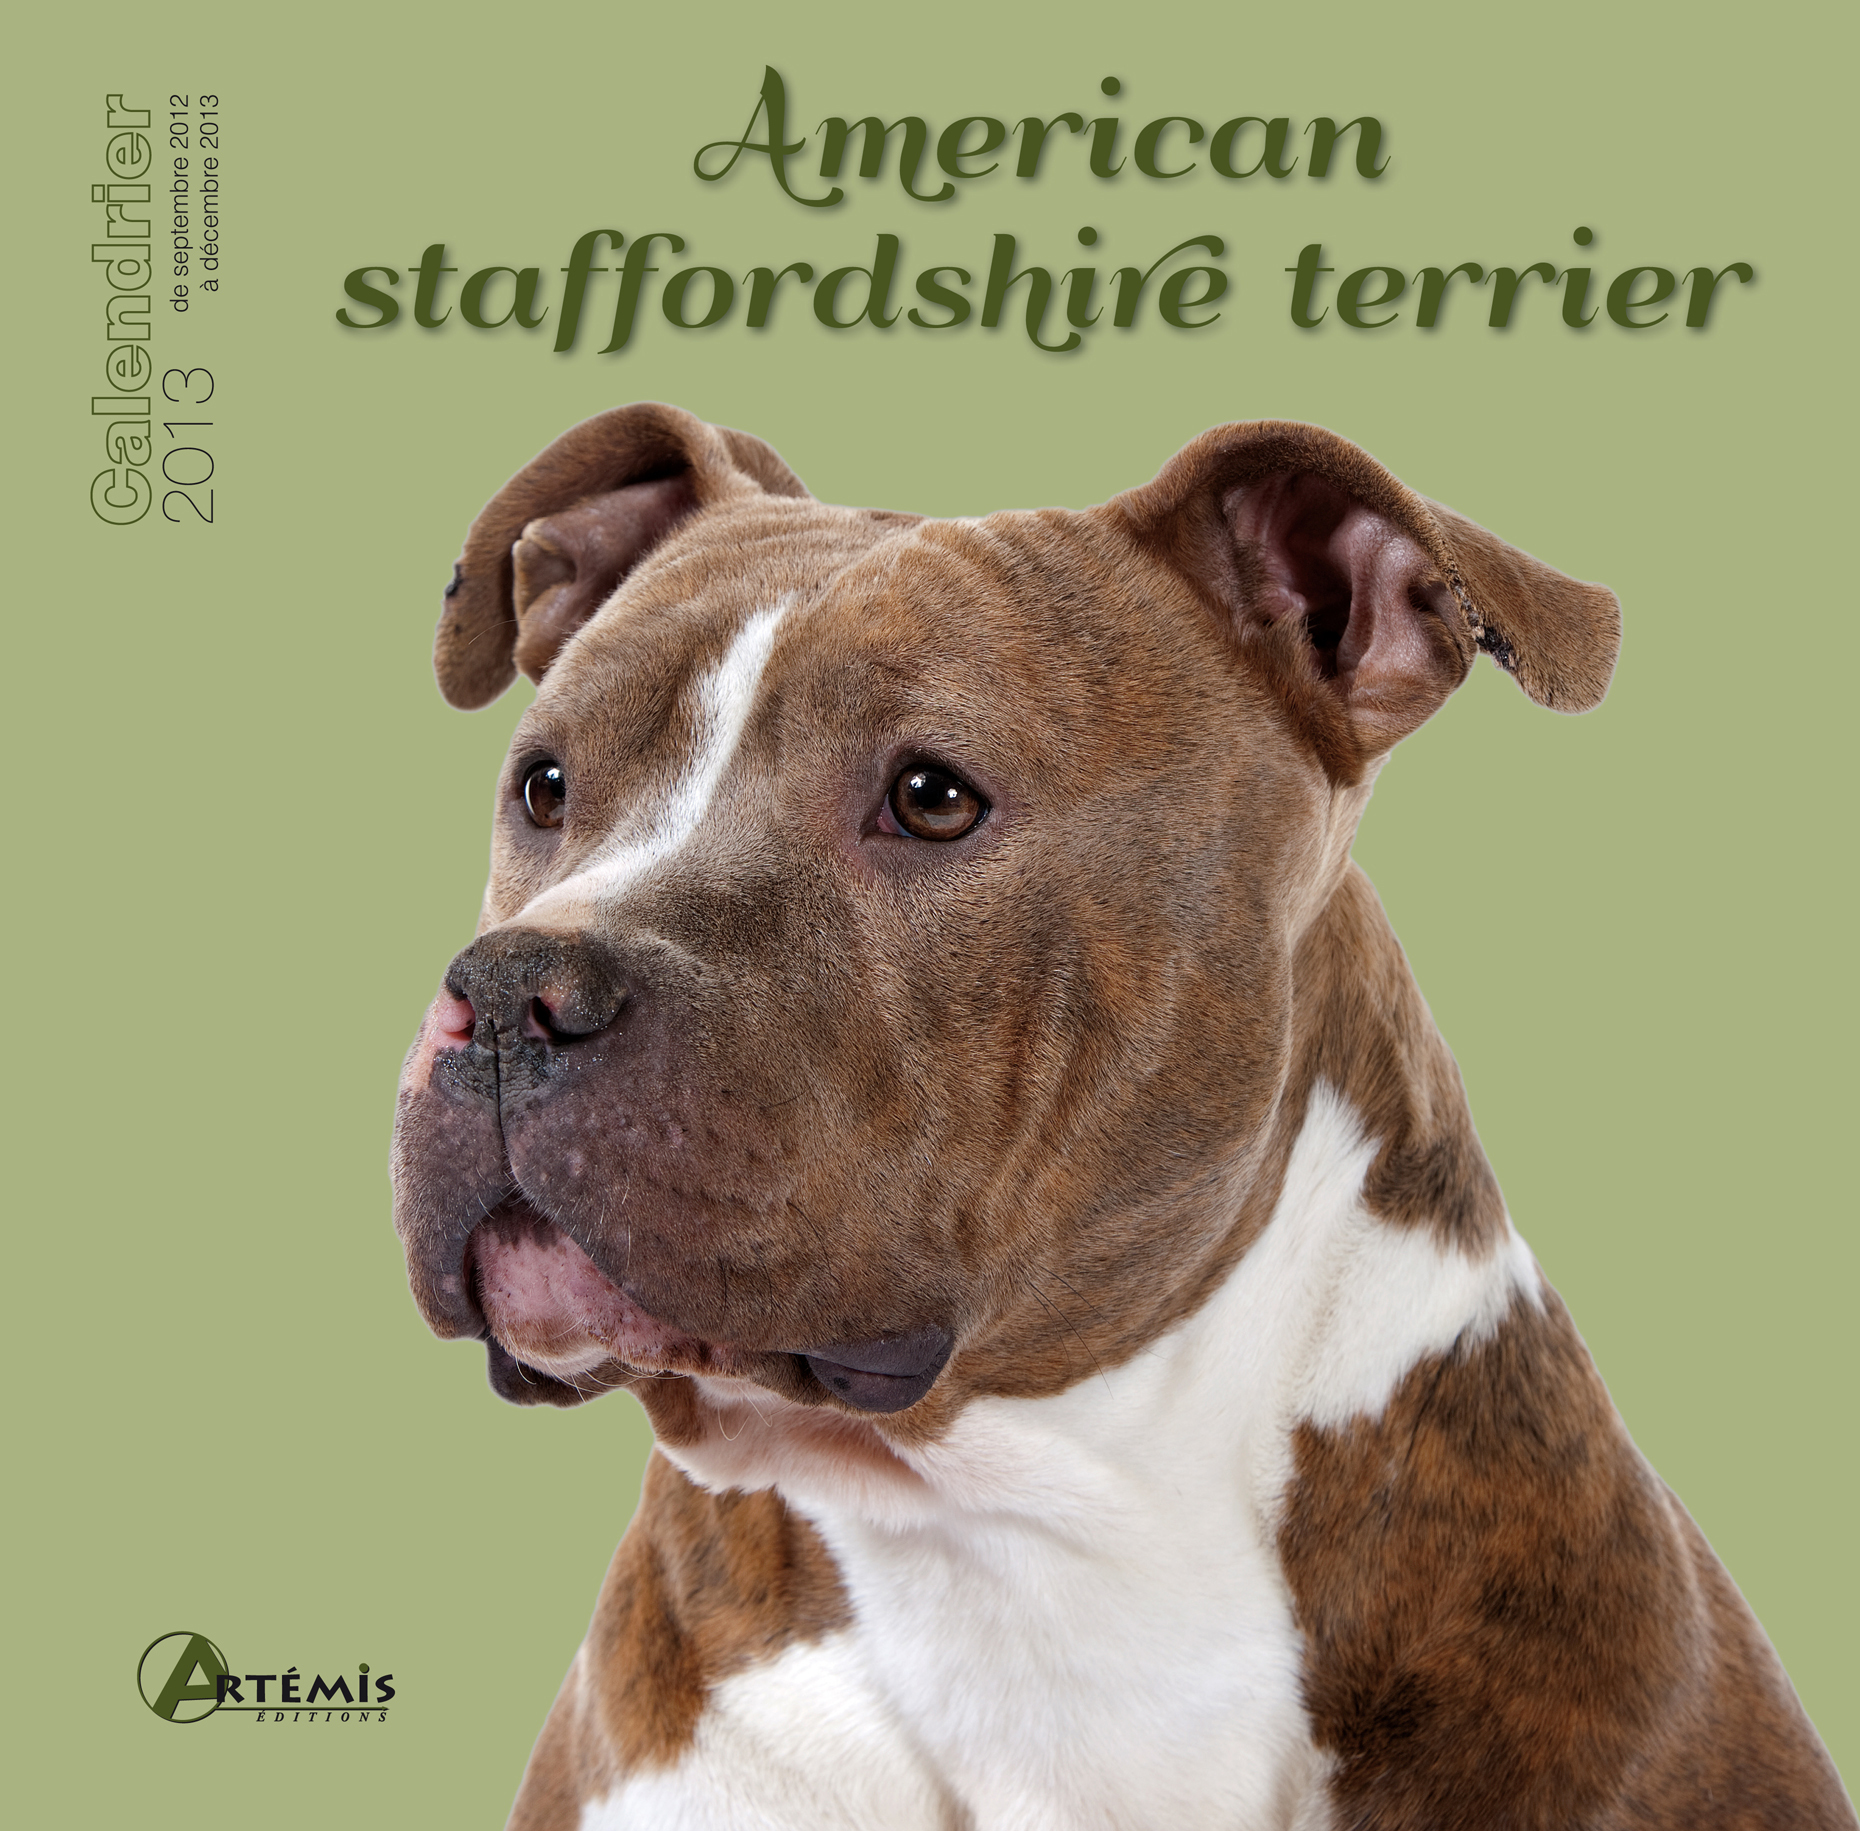 **AMERICAN STAFFORDSHIRE TERRIER (2013)